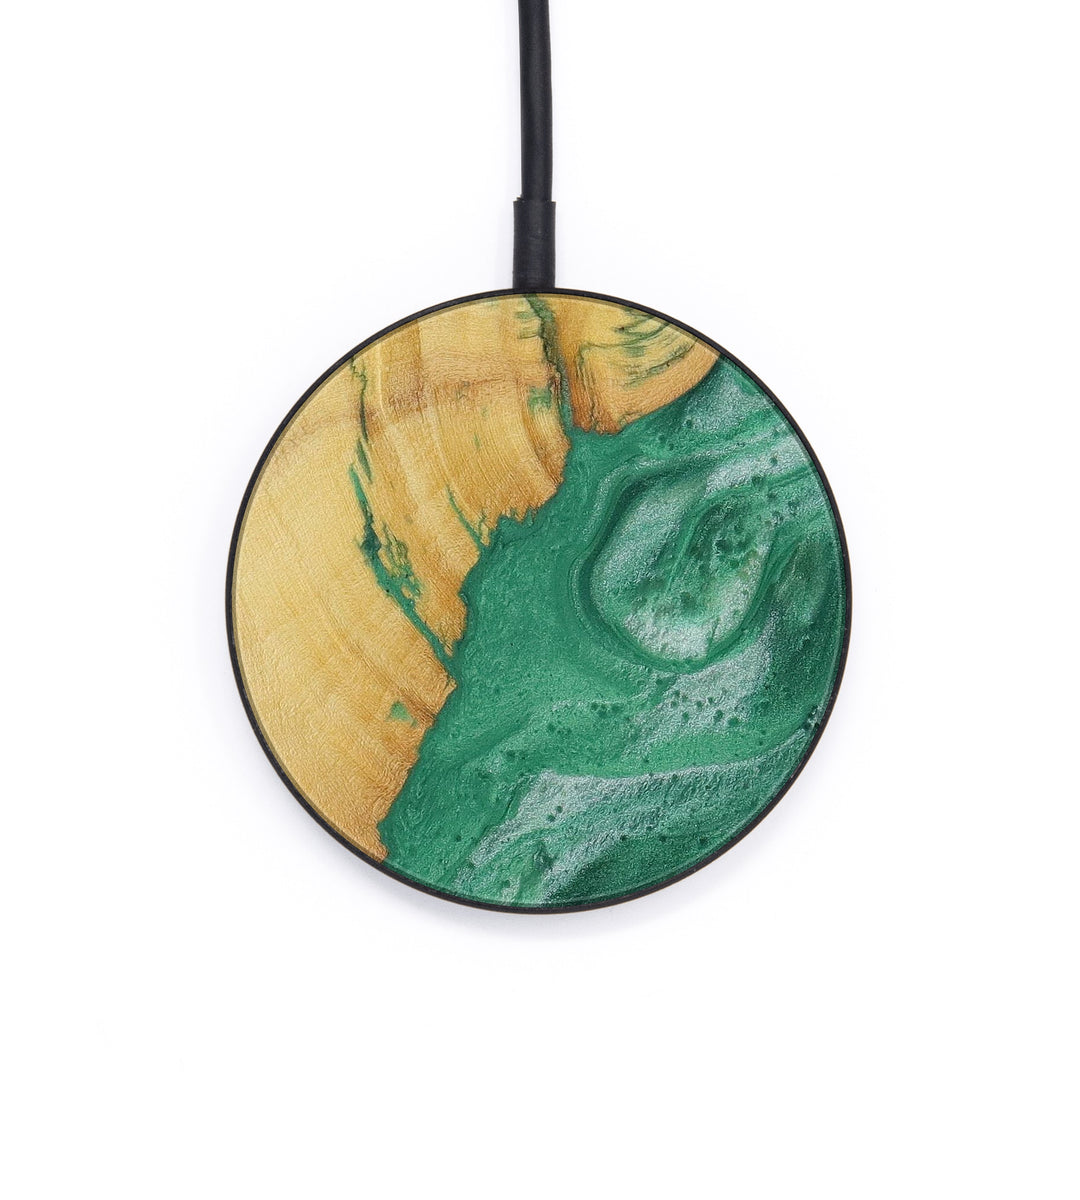 Circle Wood+Resin Wireless Charger - Dynah (Dark Green, 423315)